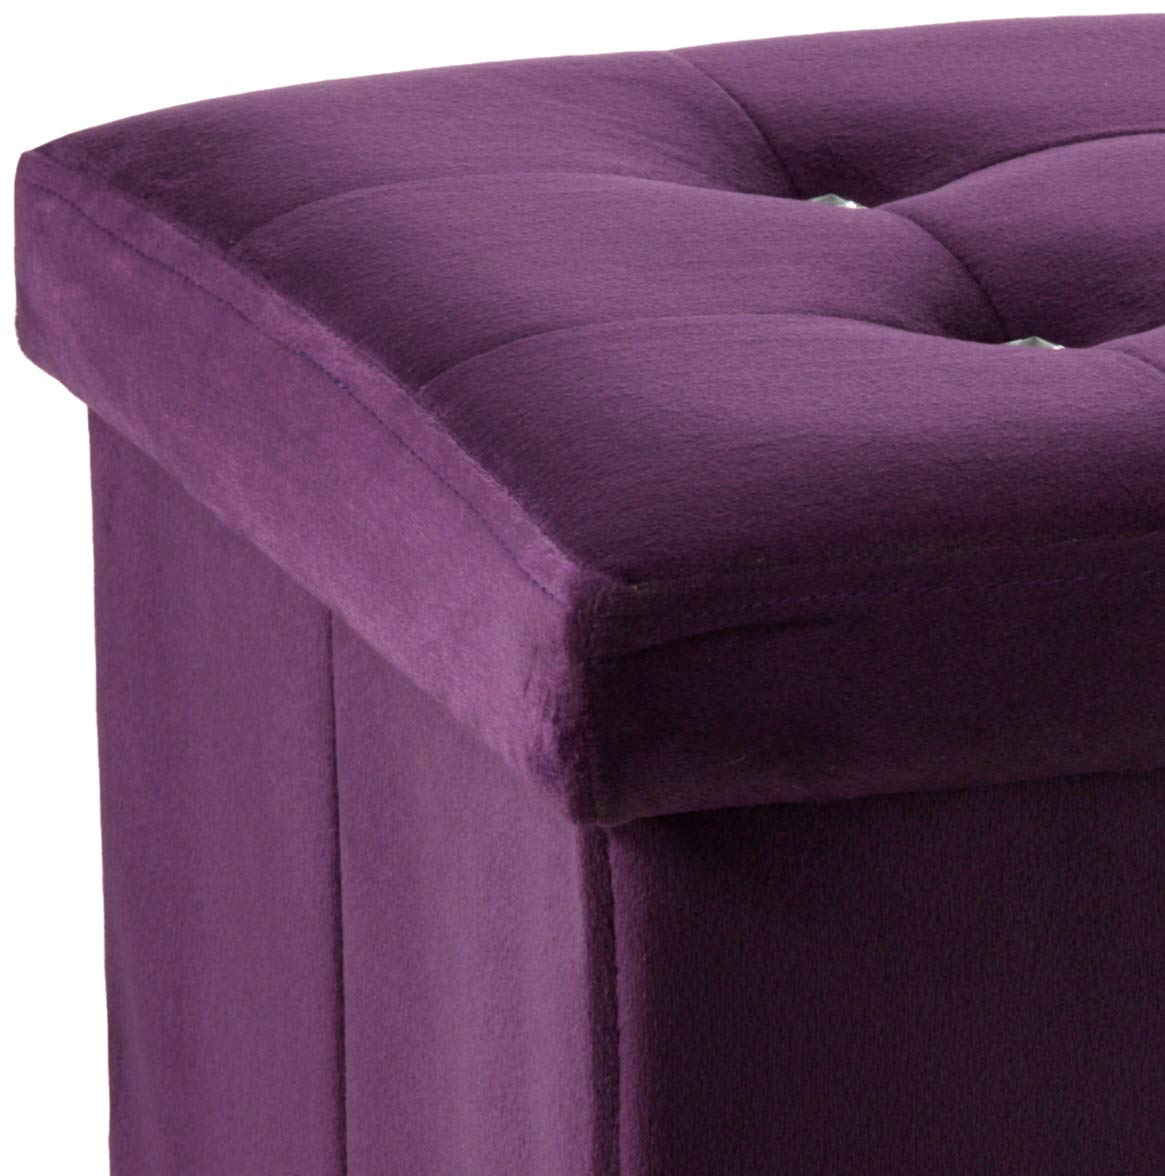 Home Basics Ottoman with Stones HDS Trading Corp FS01665 Purple